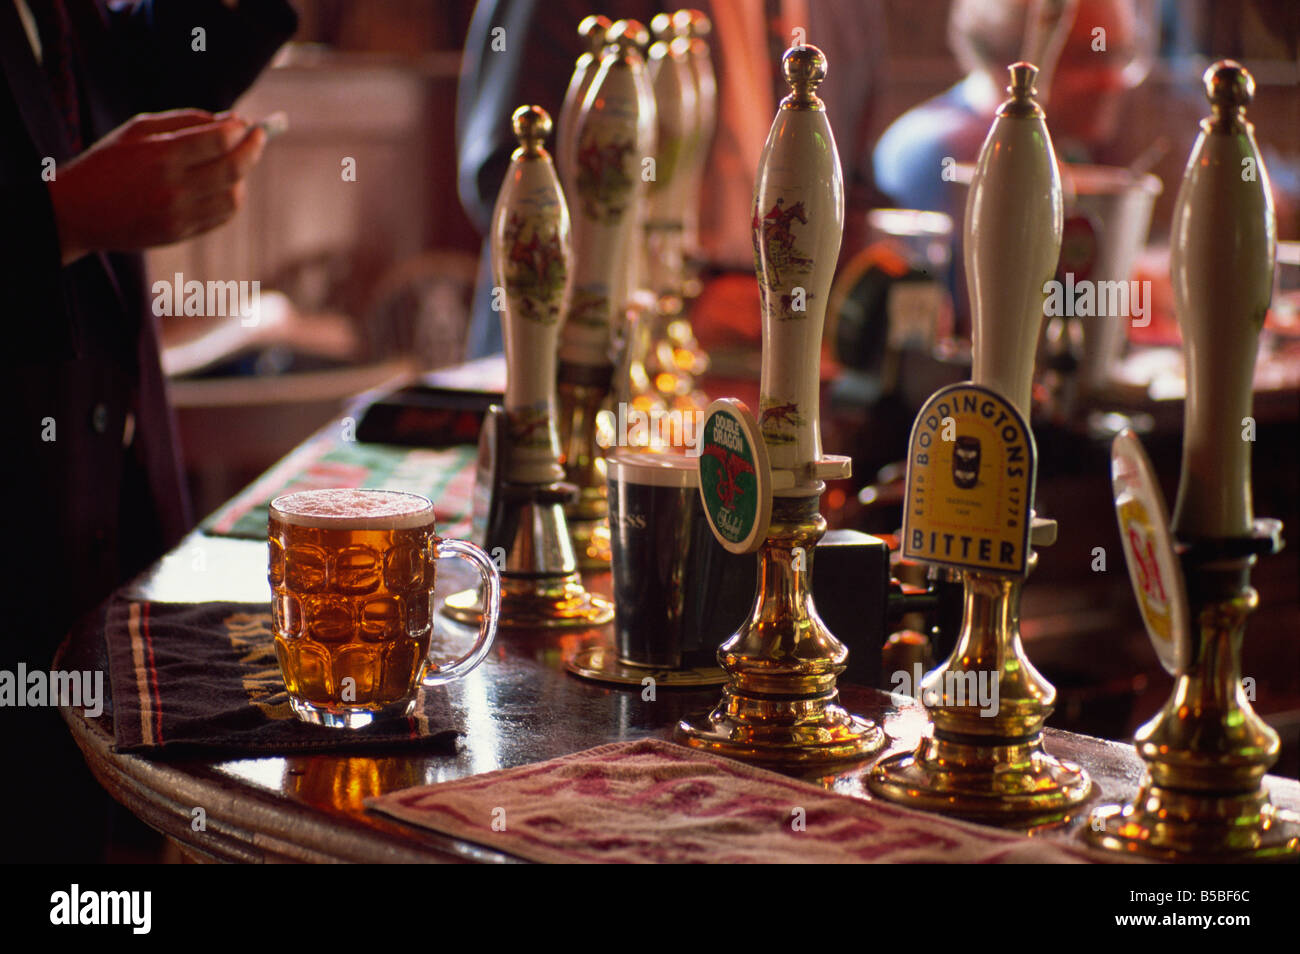 Interior of the Sun Pub, London, England, Europe - Stock Image